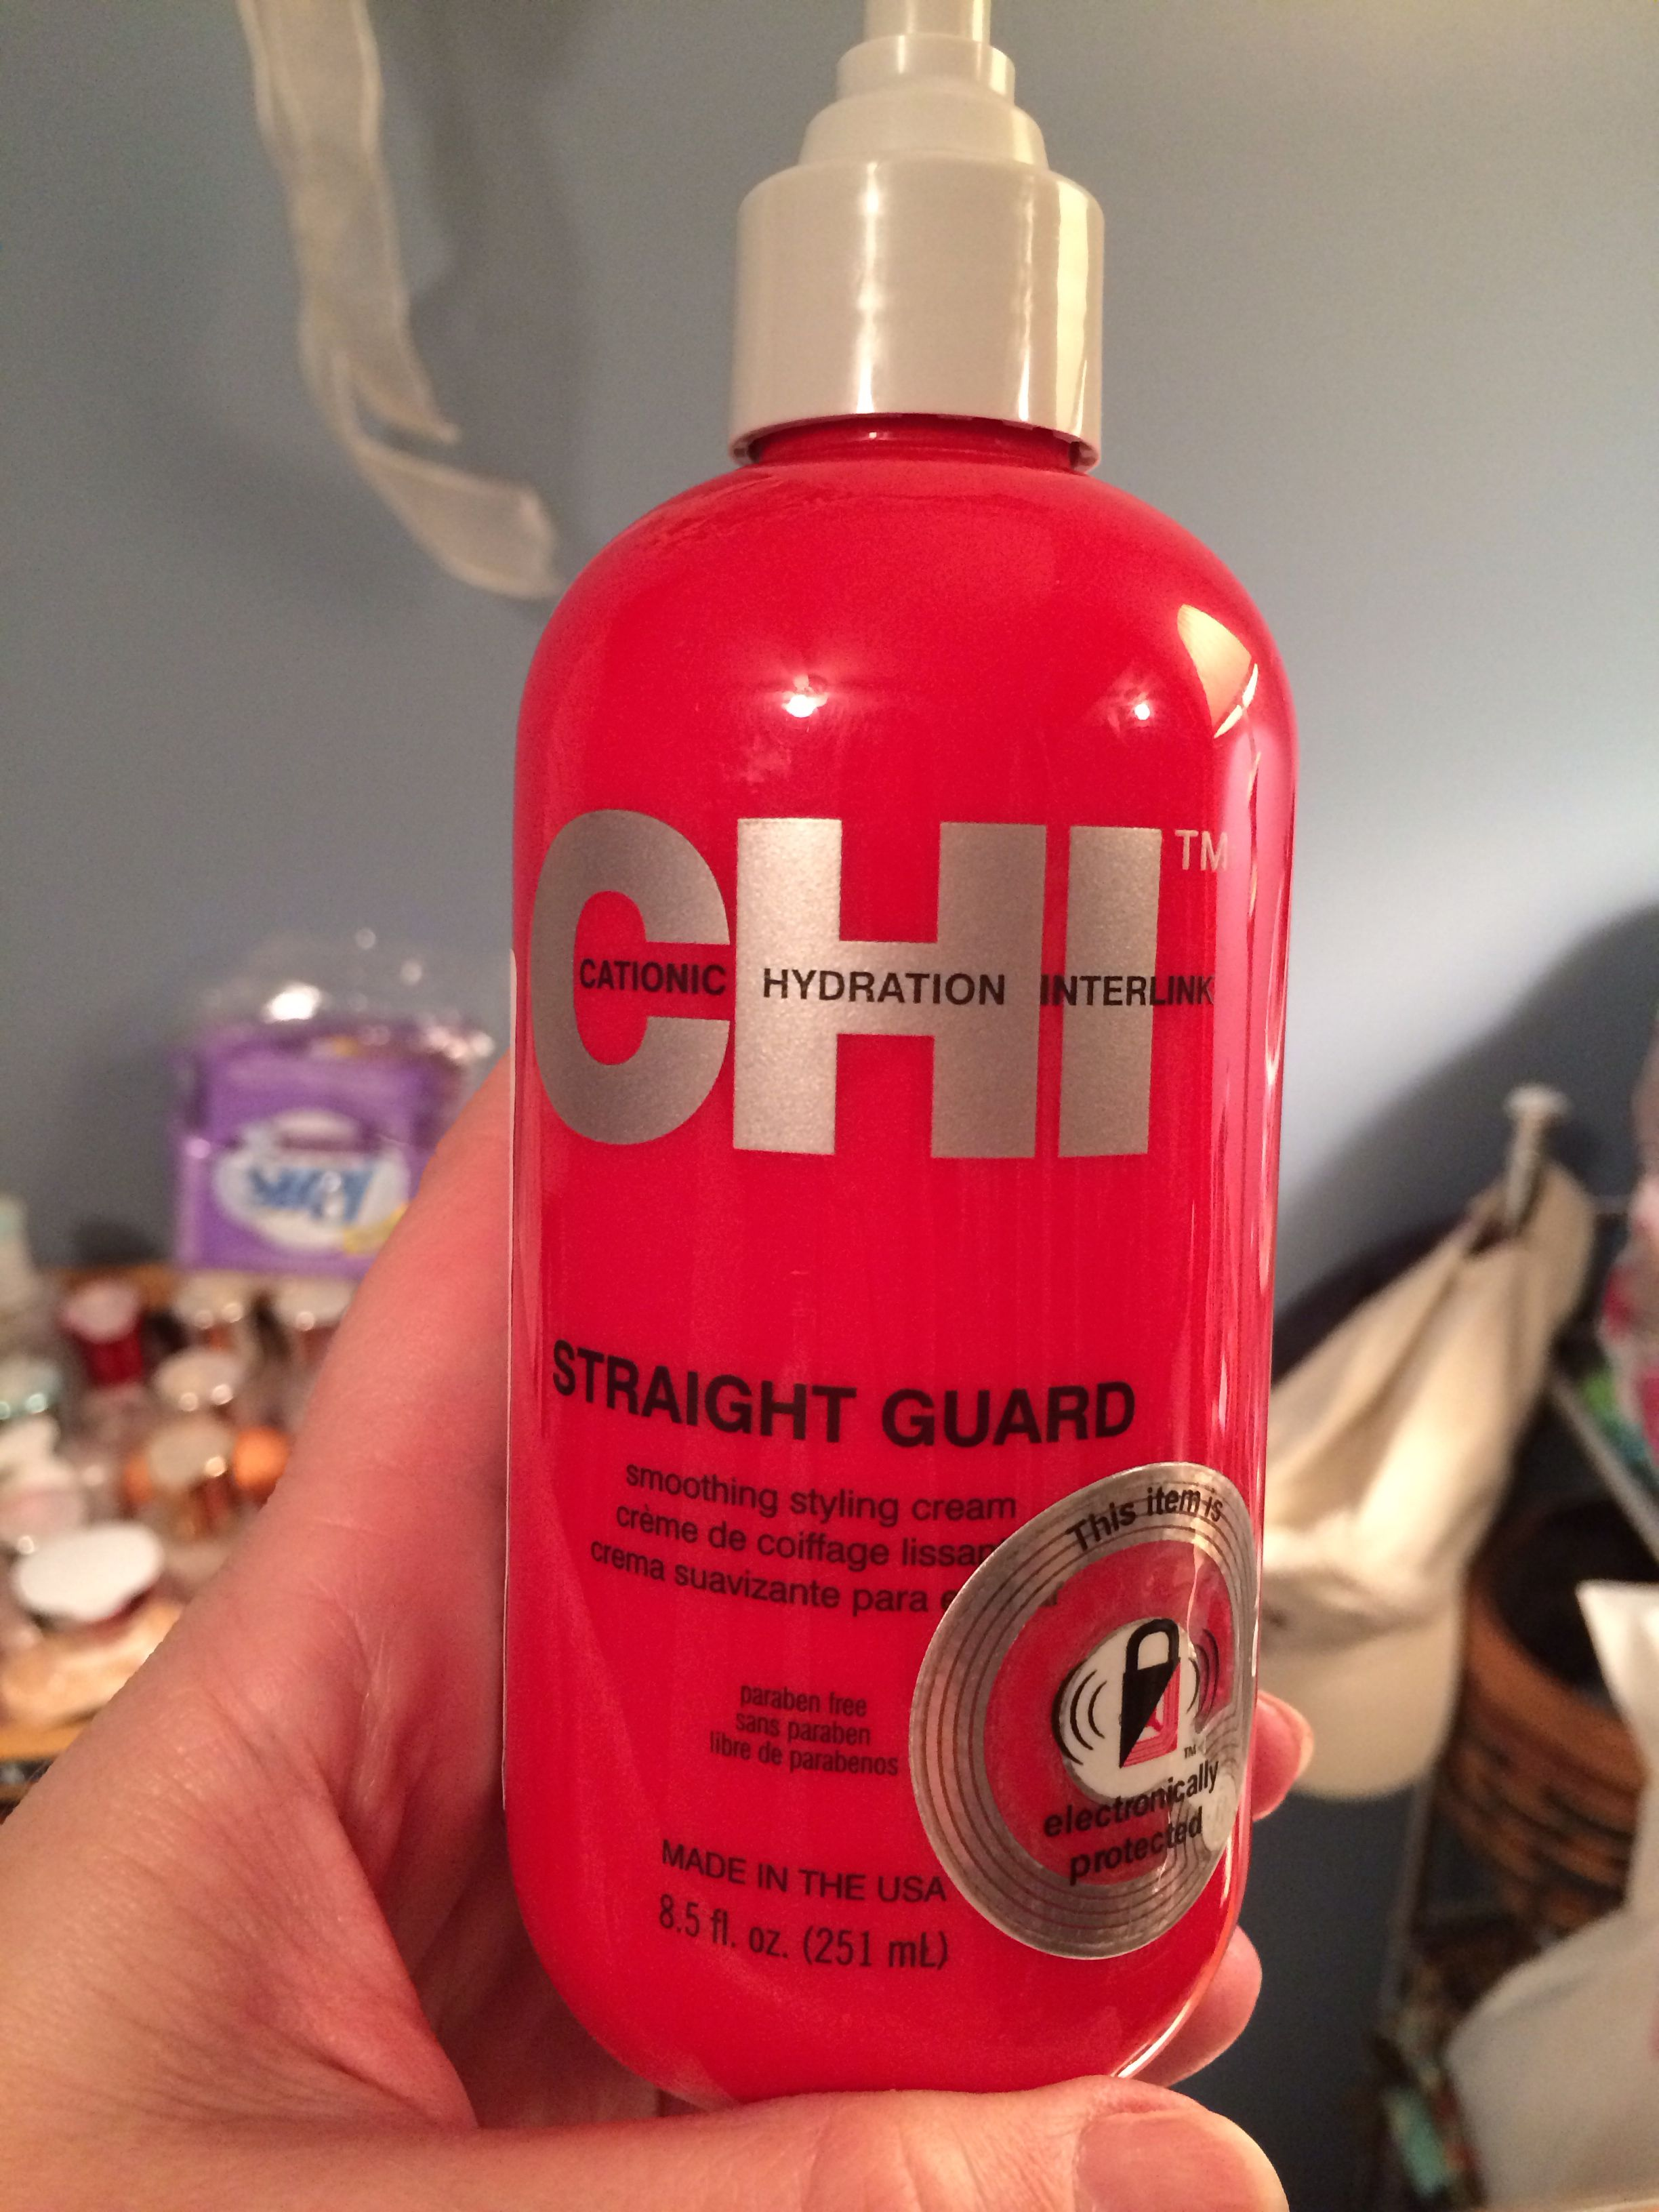 Awesome hair product Styling cream, Makeup to buy